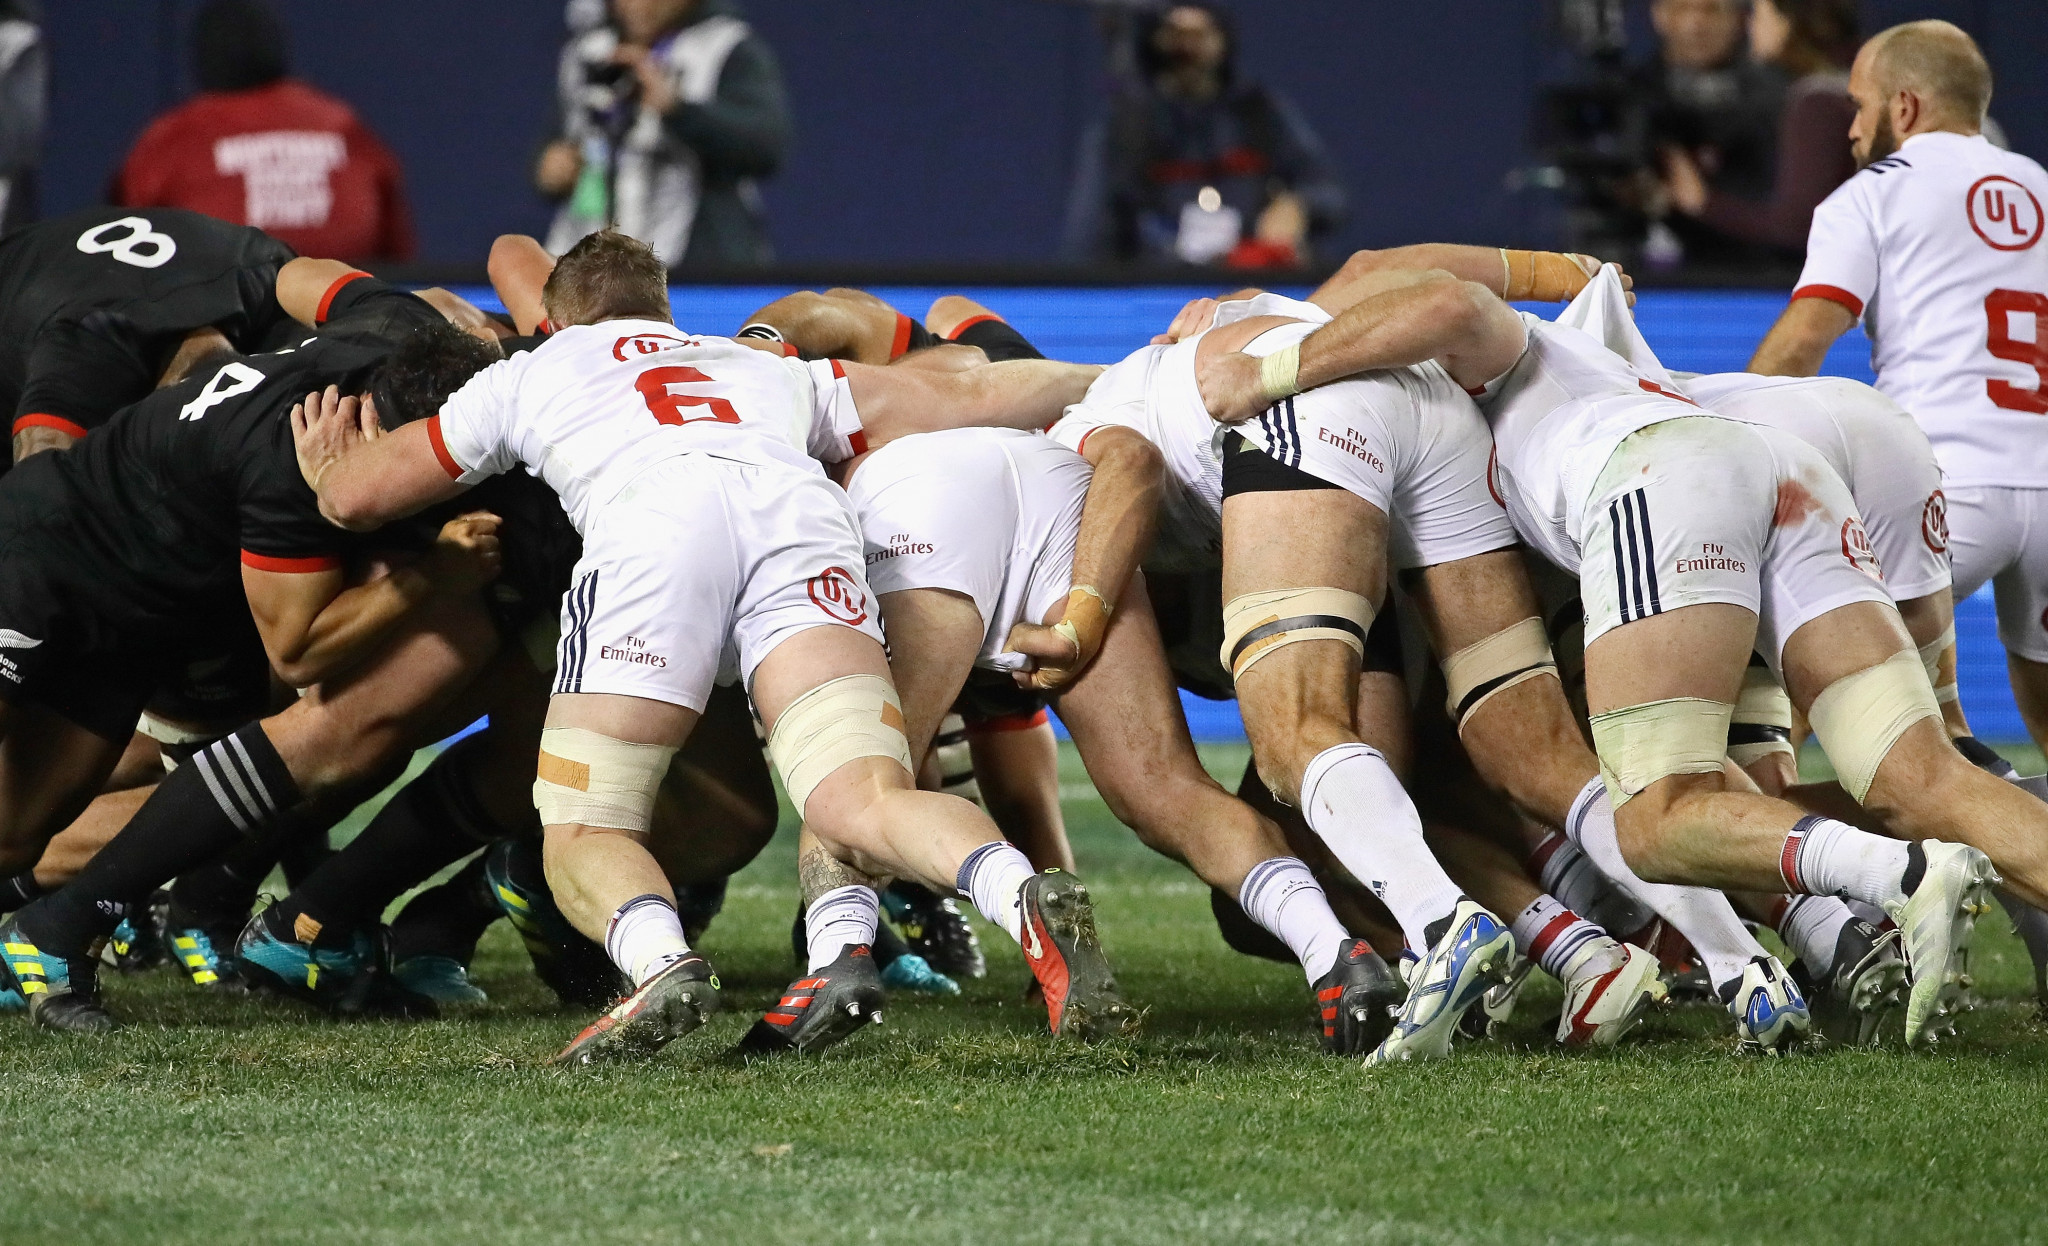 USA Rugby has recently filed for bankruptcy ©Getty Images